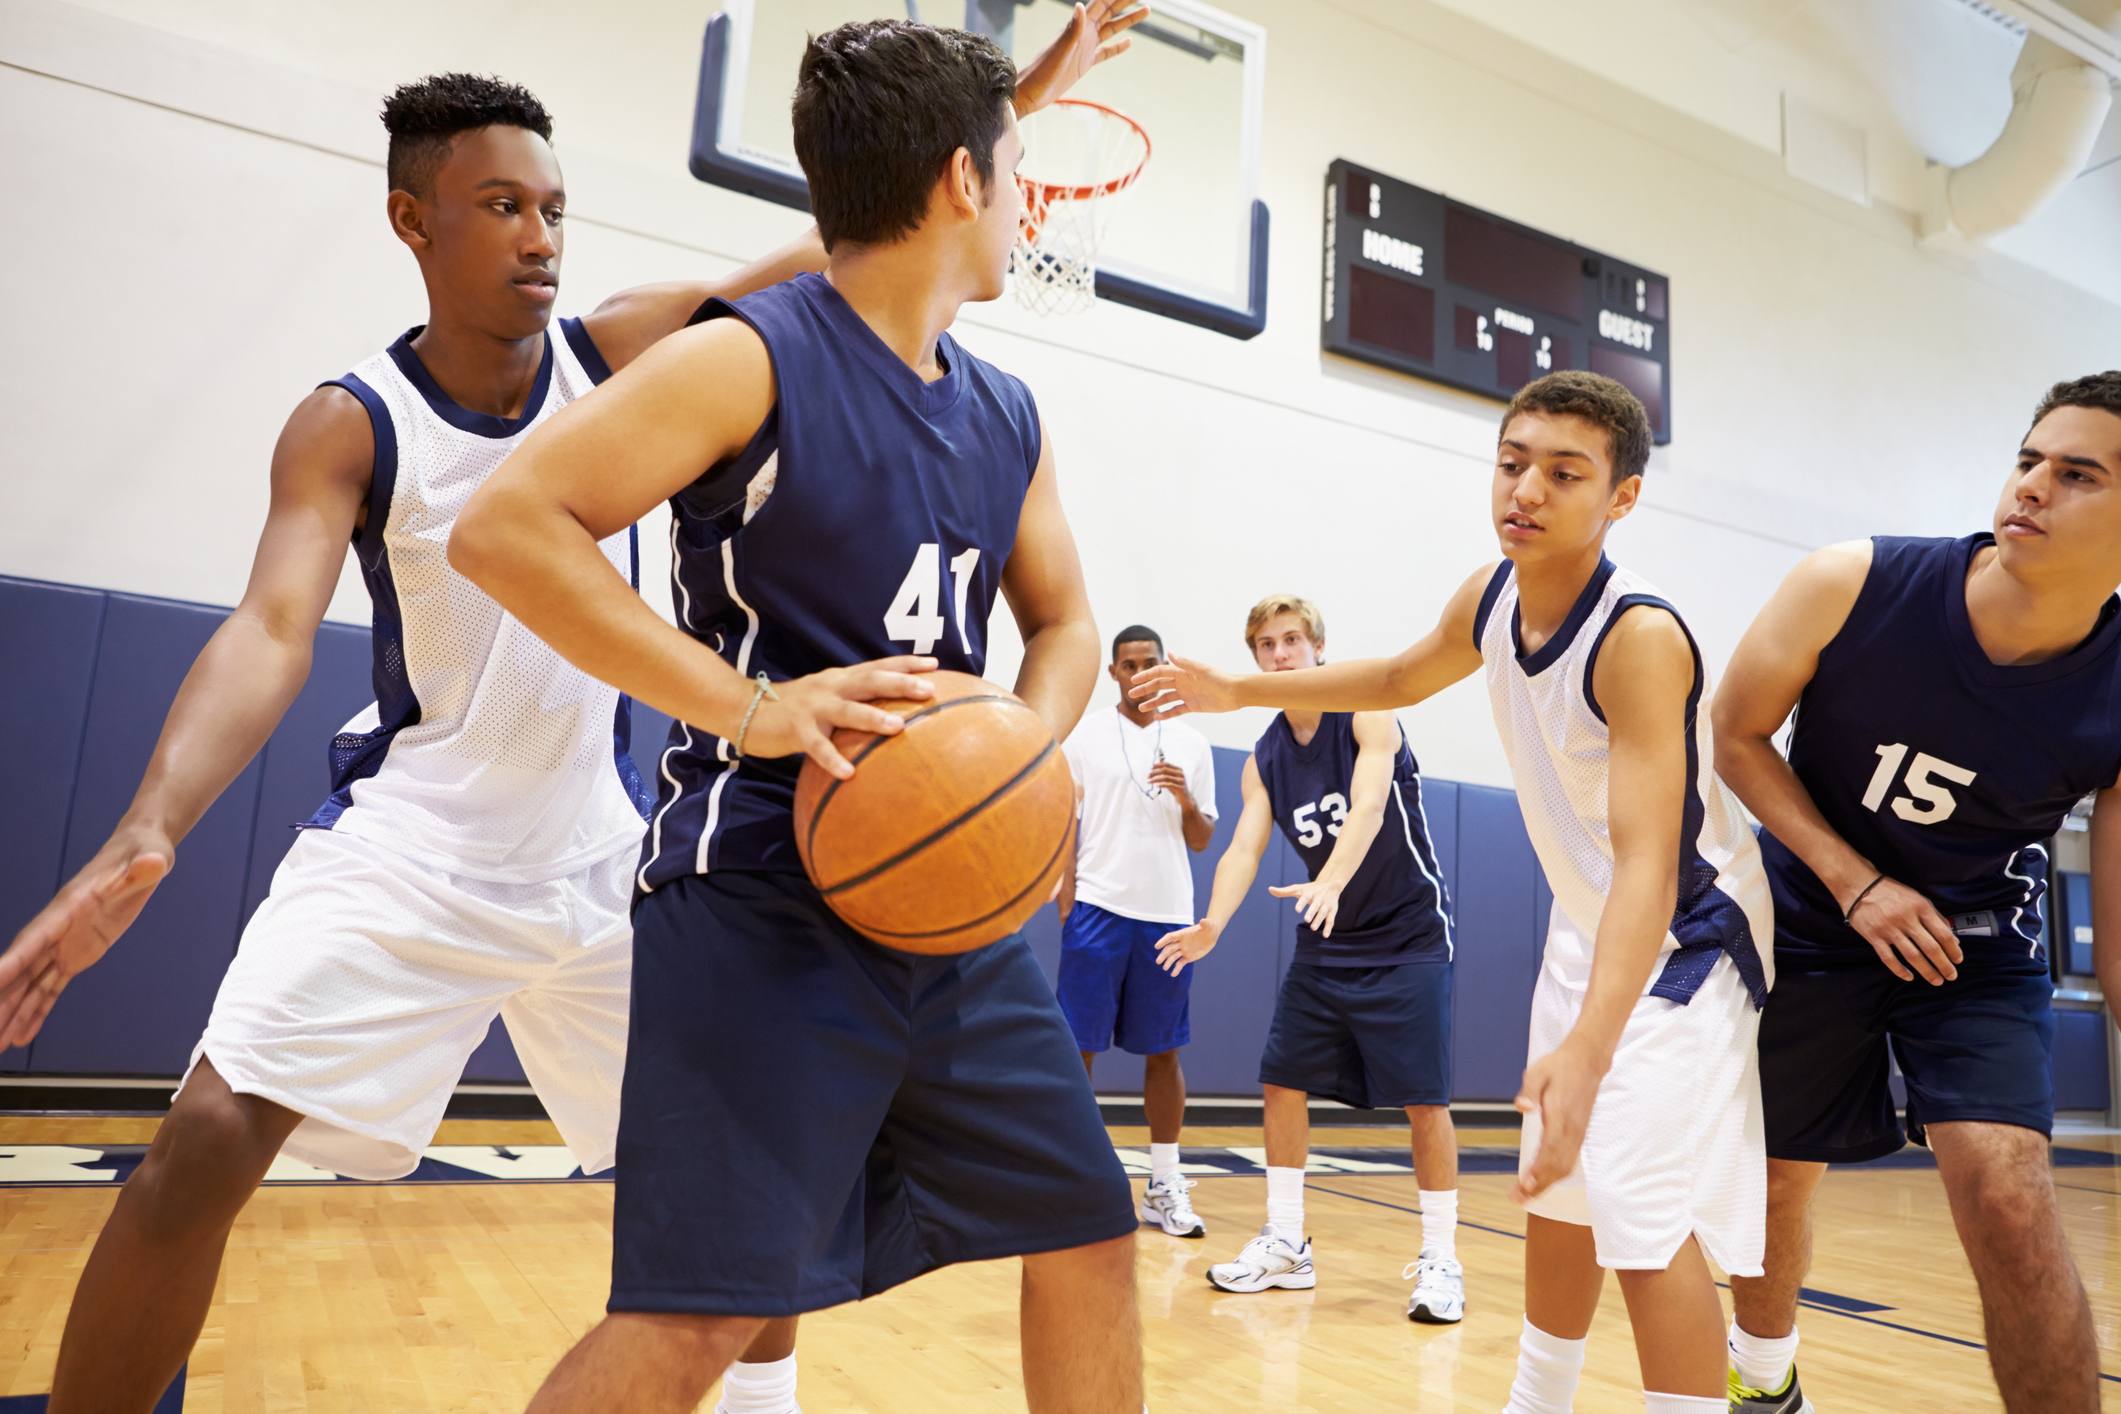 sports programs in Plymouth schools